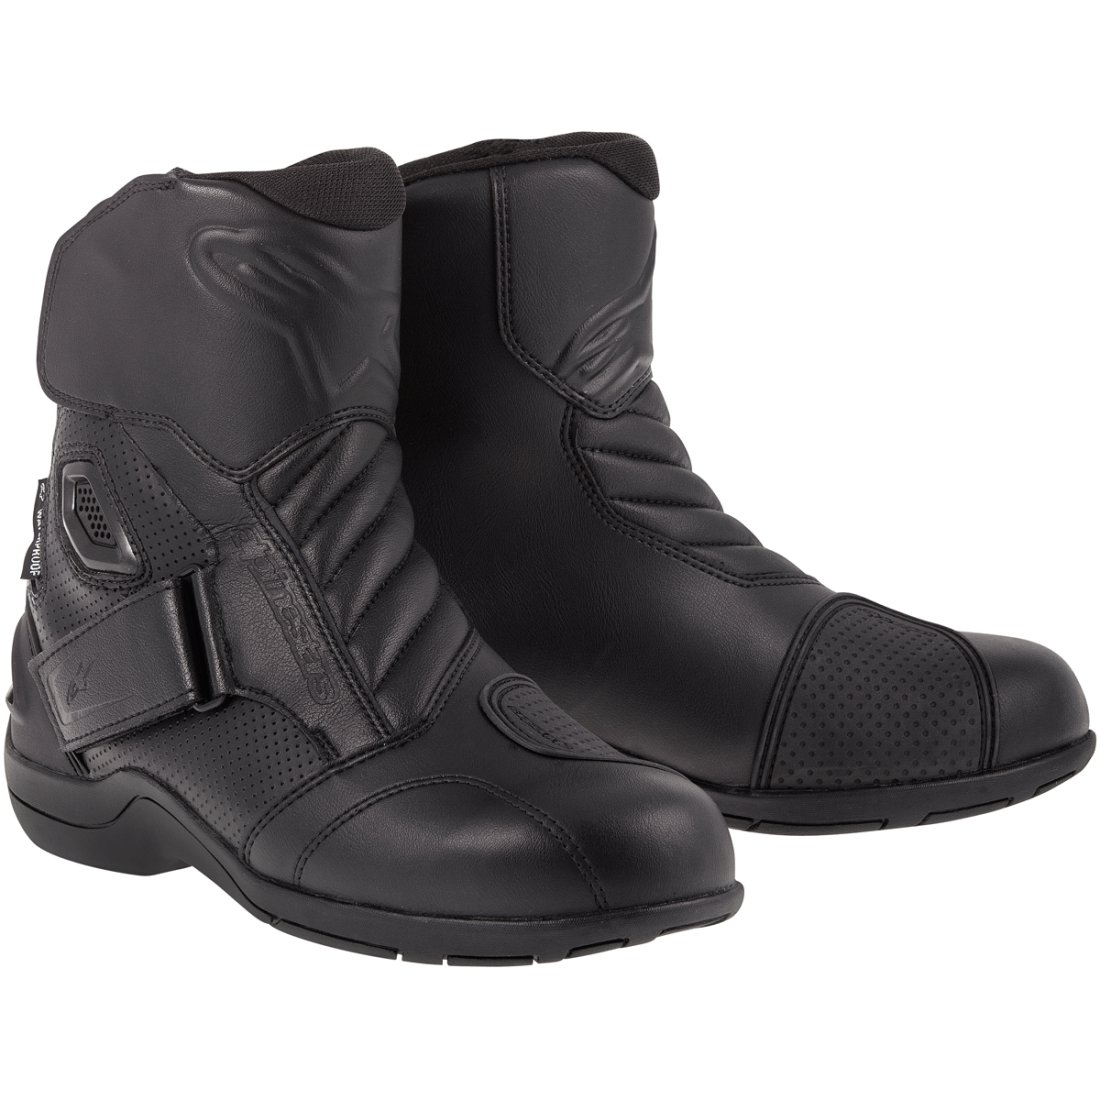 Bottes ALPINESTARS Gunner Waterproof Black